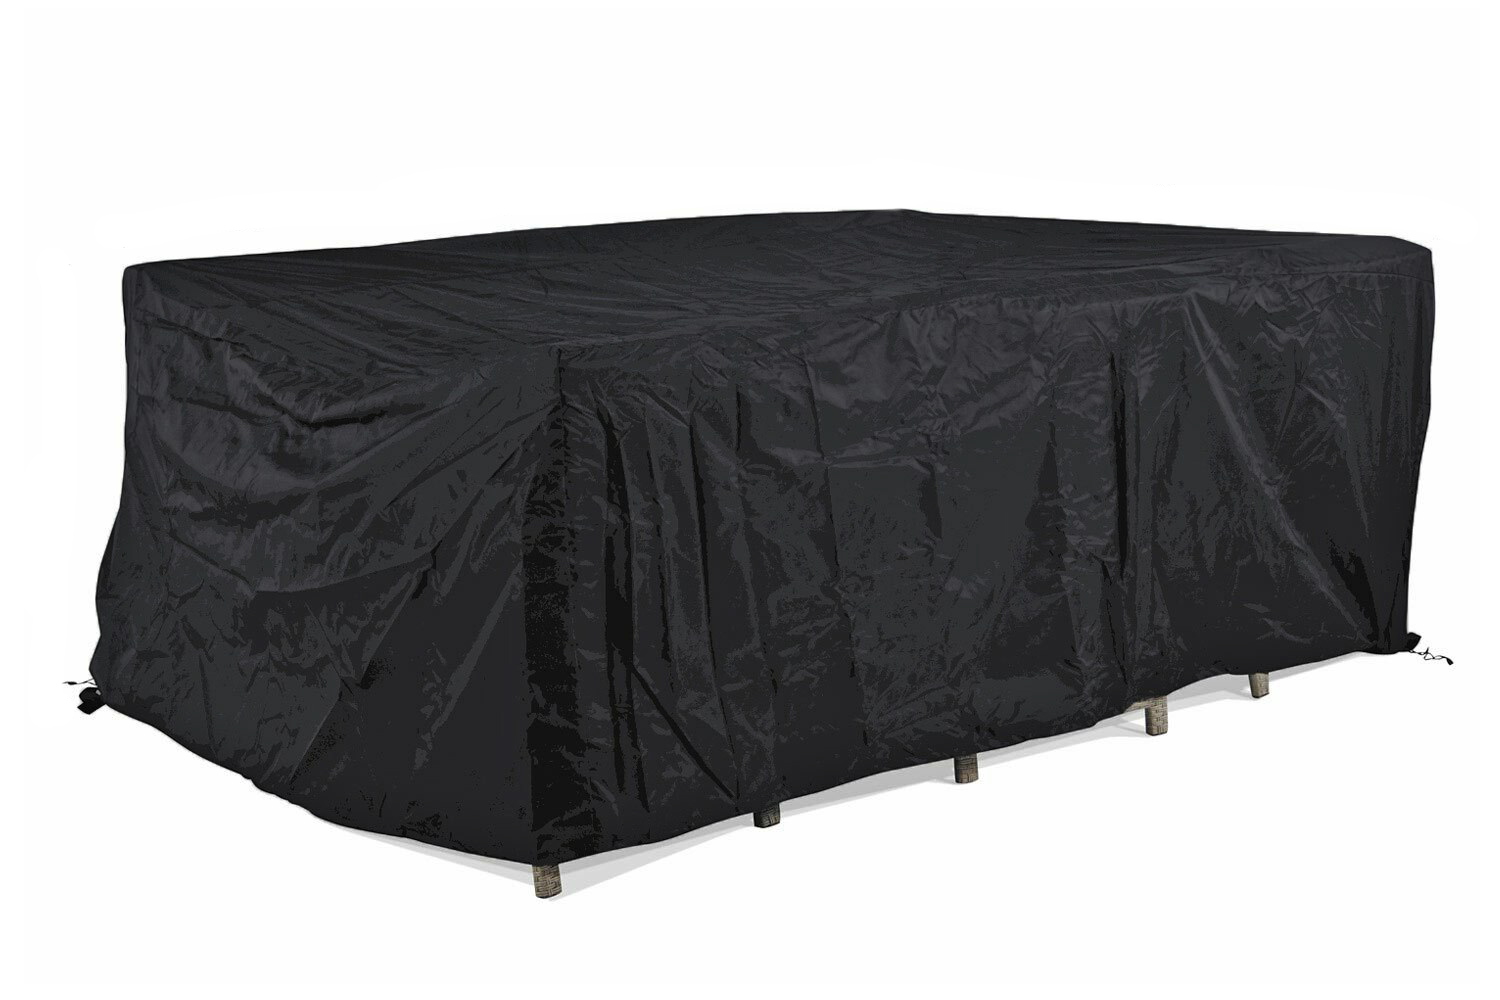 Outdoor Cover tuinsethoes 300 x 190 x (h) 85 cm